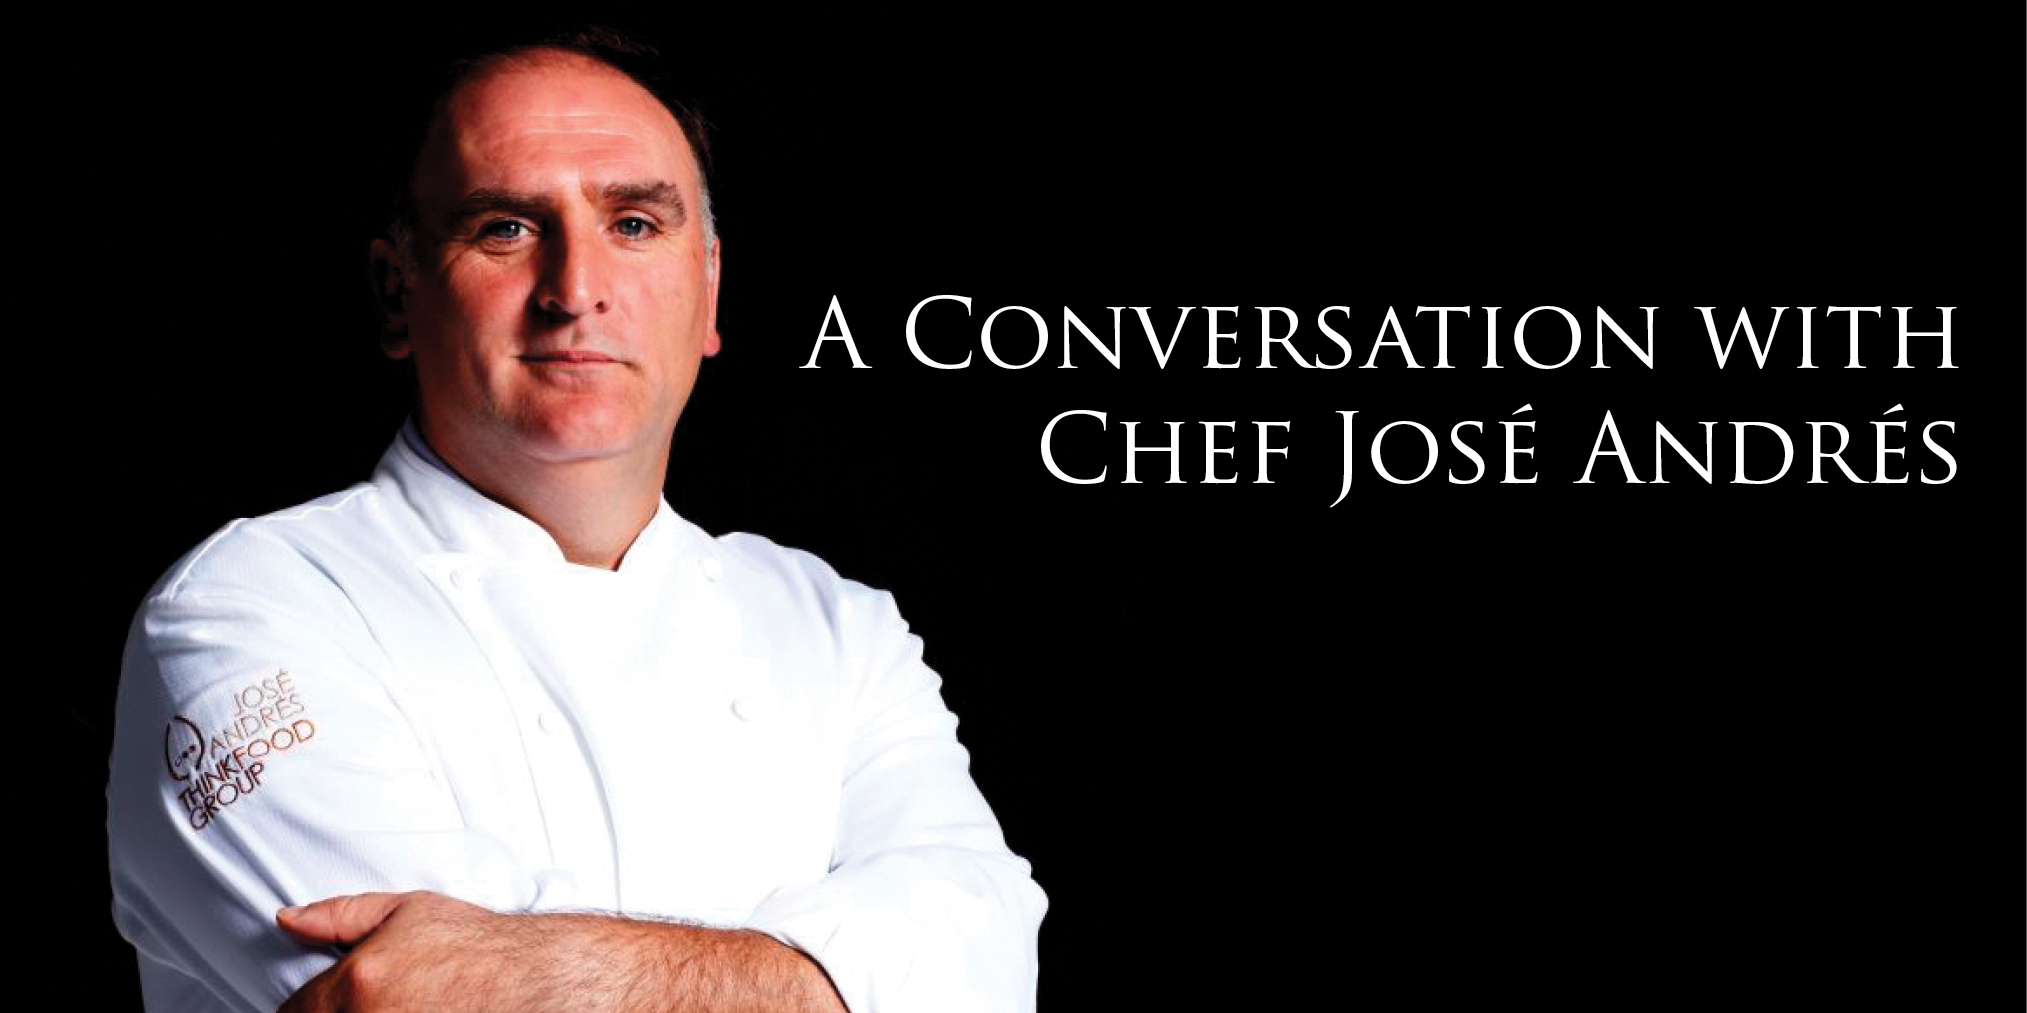 A conversation with chef jos andr s vivatysons for Fish by jose andres menu